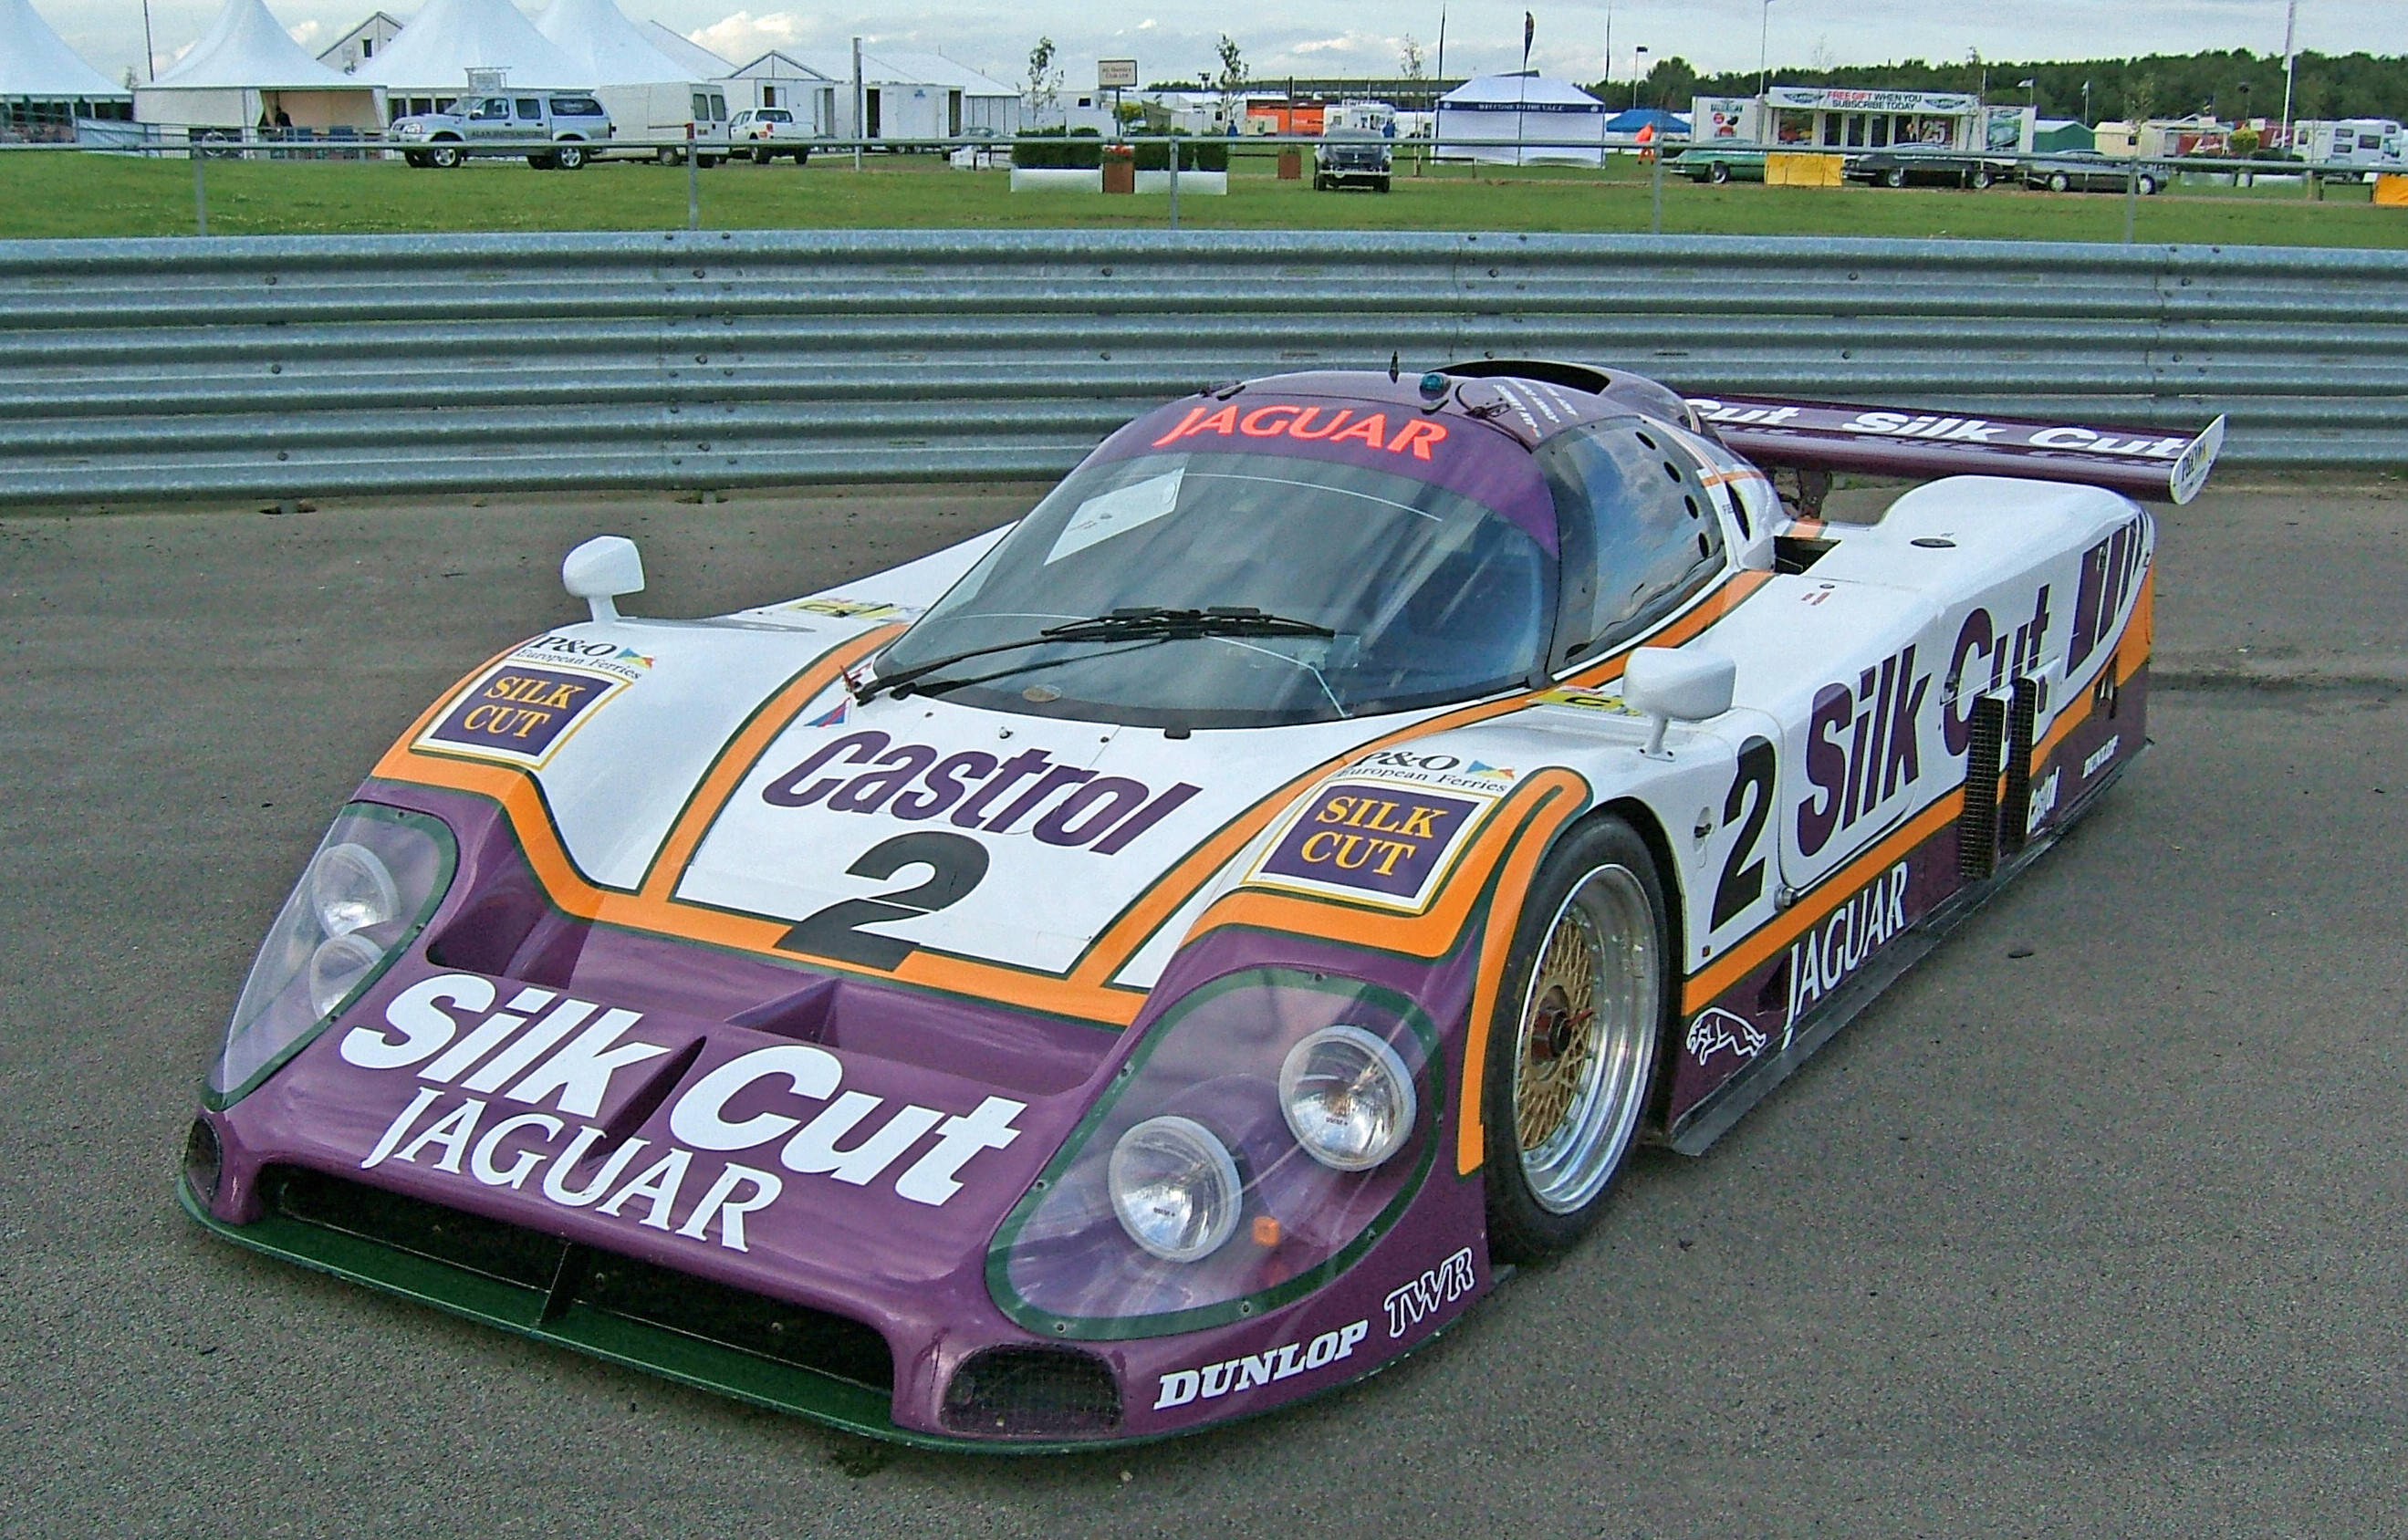 Jaguar xjr-9 photo - 3